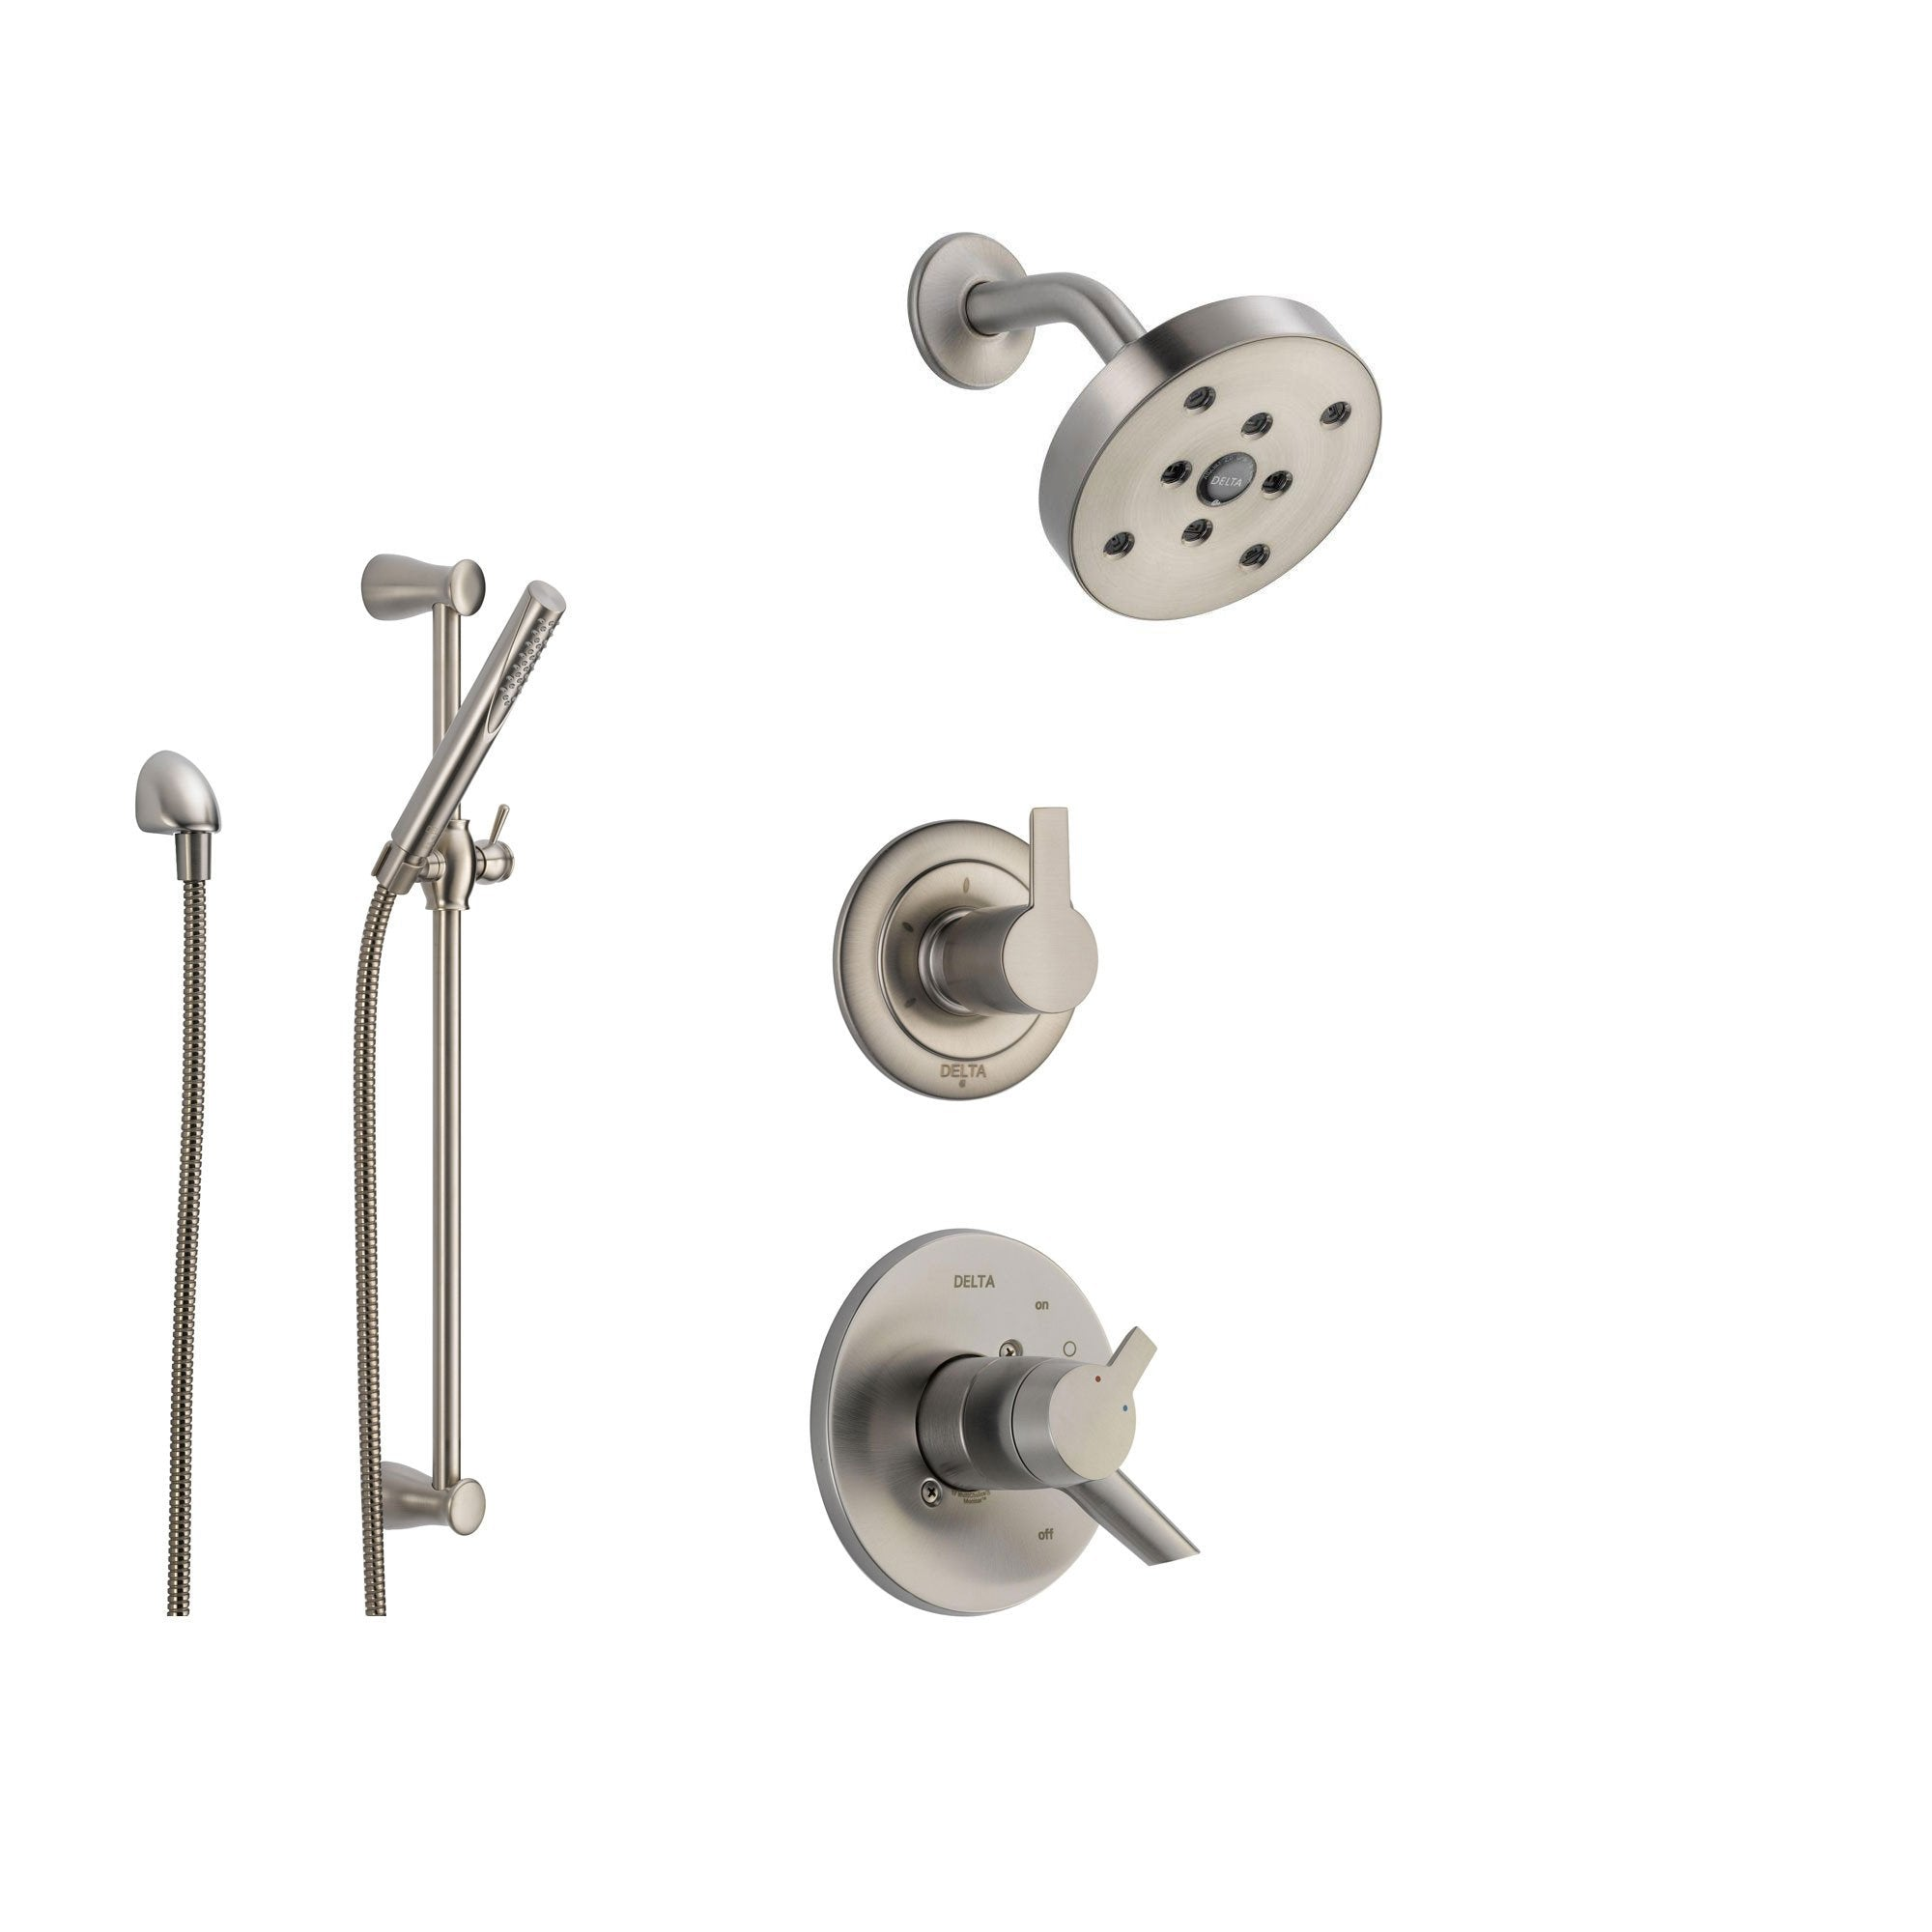 Delta Compel Stainless Steel Shower System with Dual Control Shower Handle, 3-setting Diverter, Modern Showerhead, and Handheld Shower Stick SS176184SS